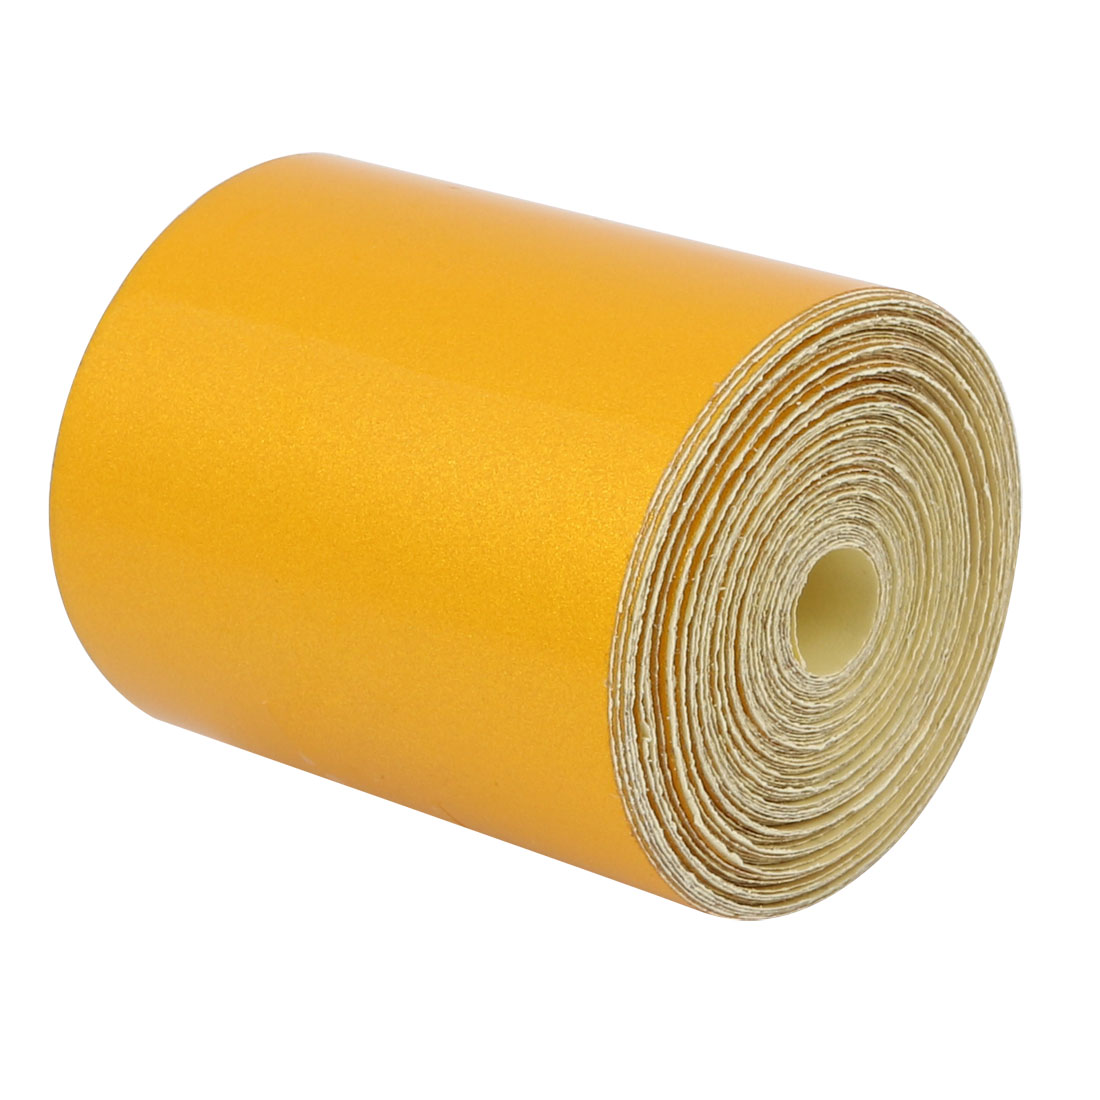 5cm Wide 5 Meters Long Single Sided Adhesive Reflective Warning Tape Yellow